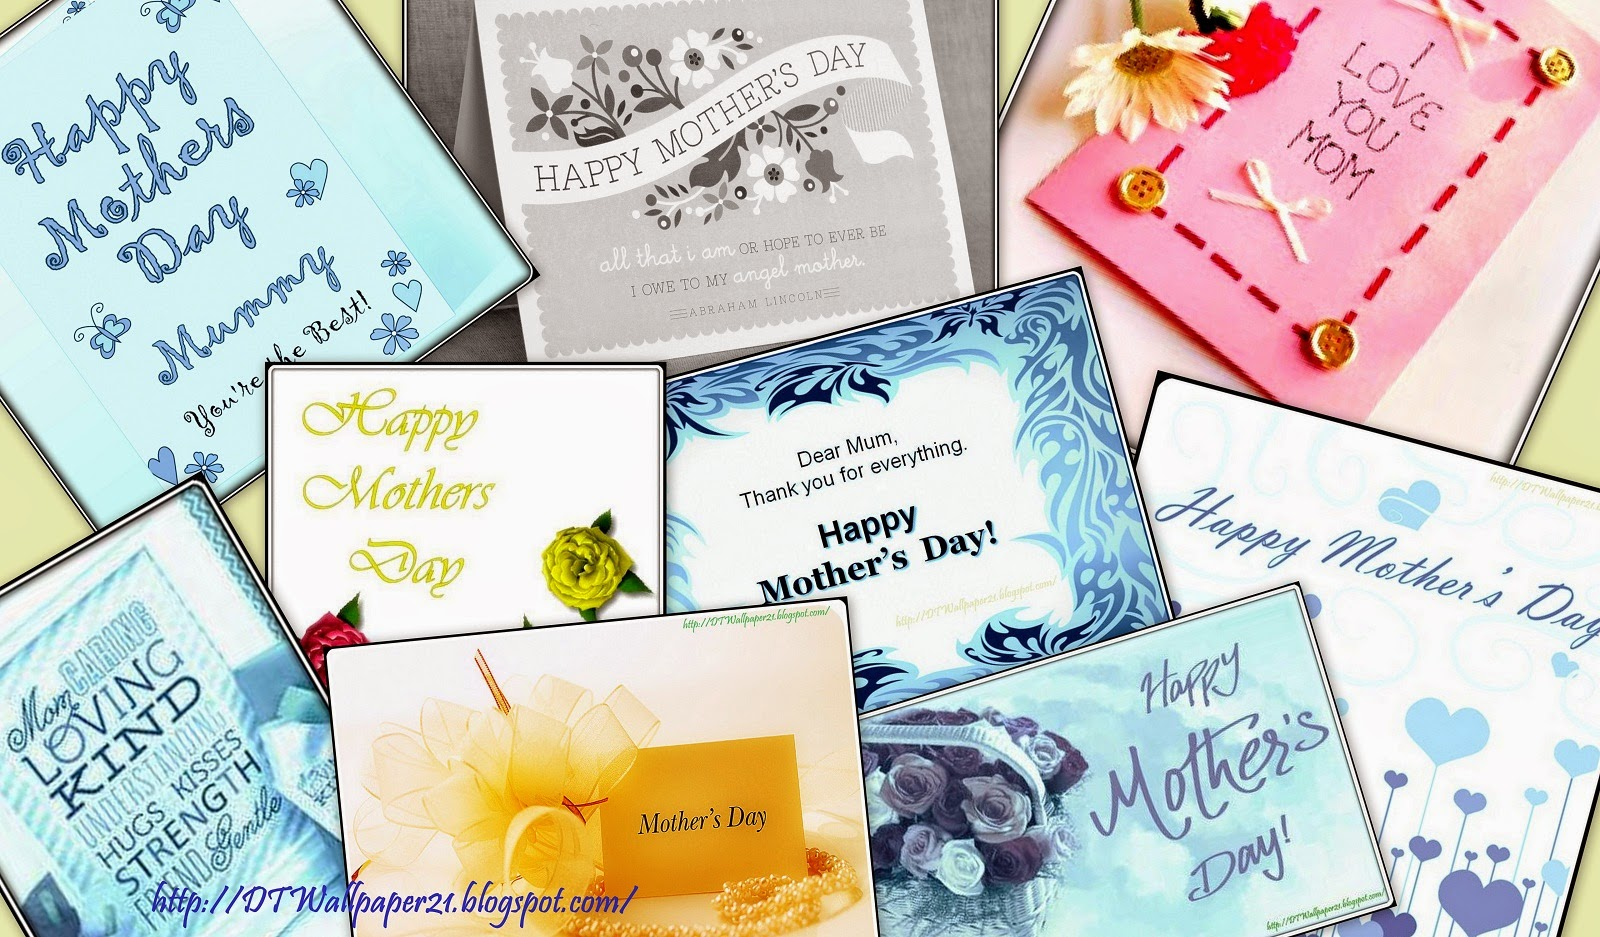 mother's day, others, mothers day pictures, mothers day images, happy mothers day, card, greetings, quotes,